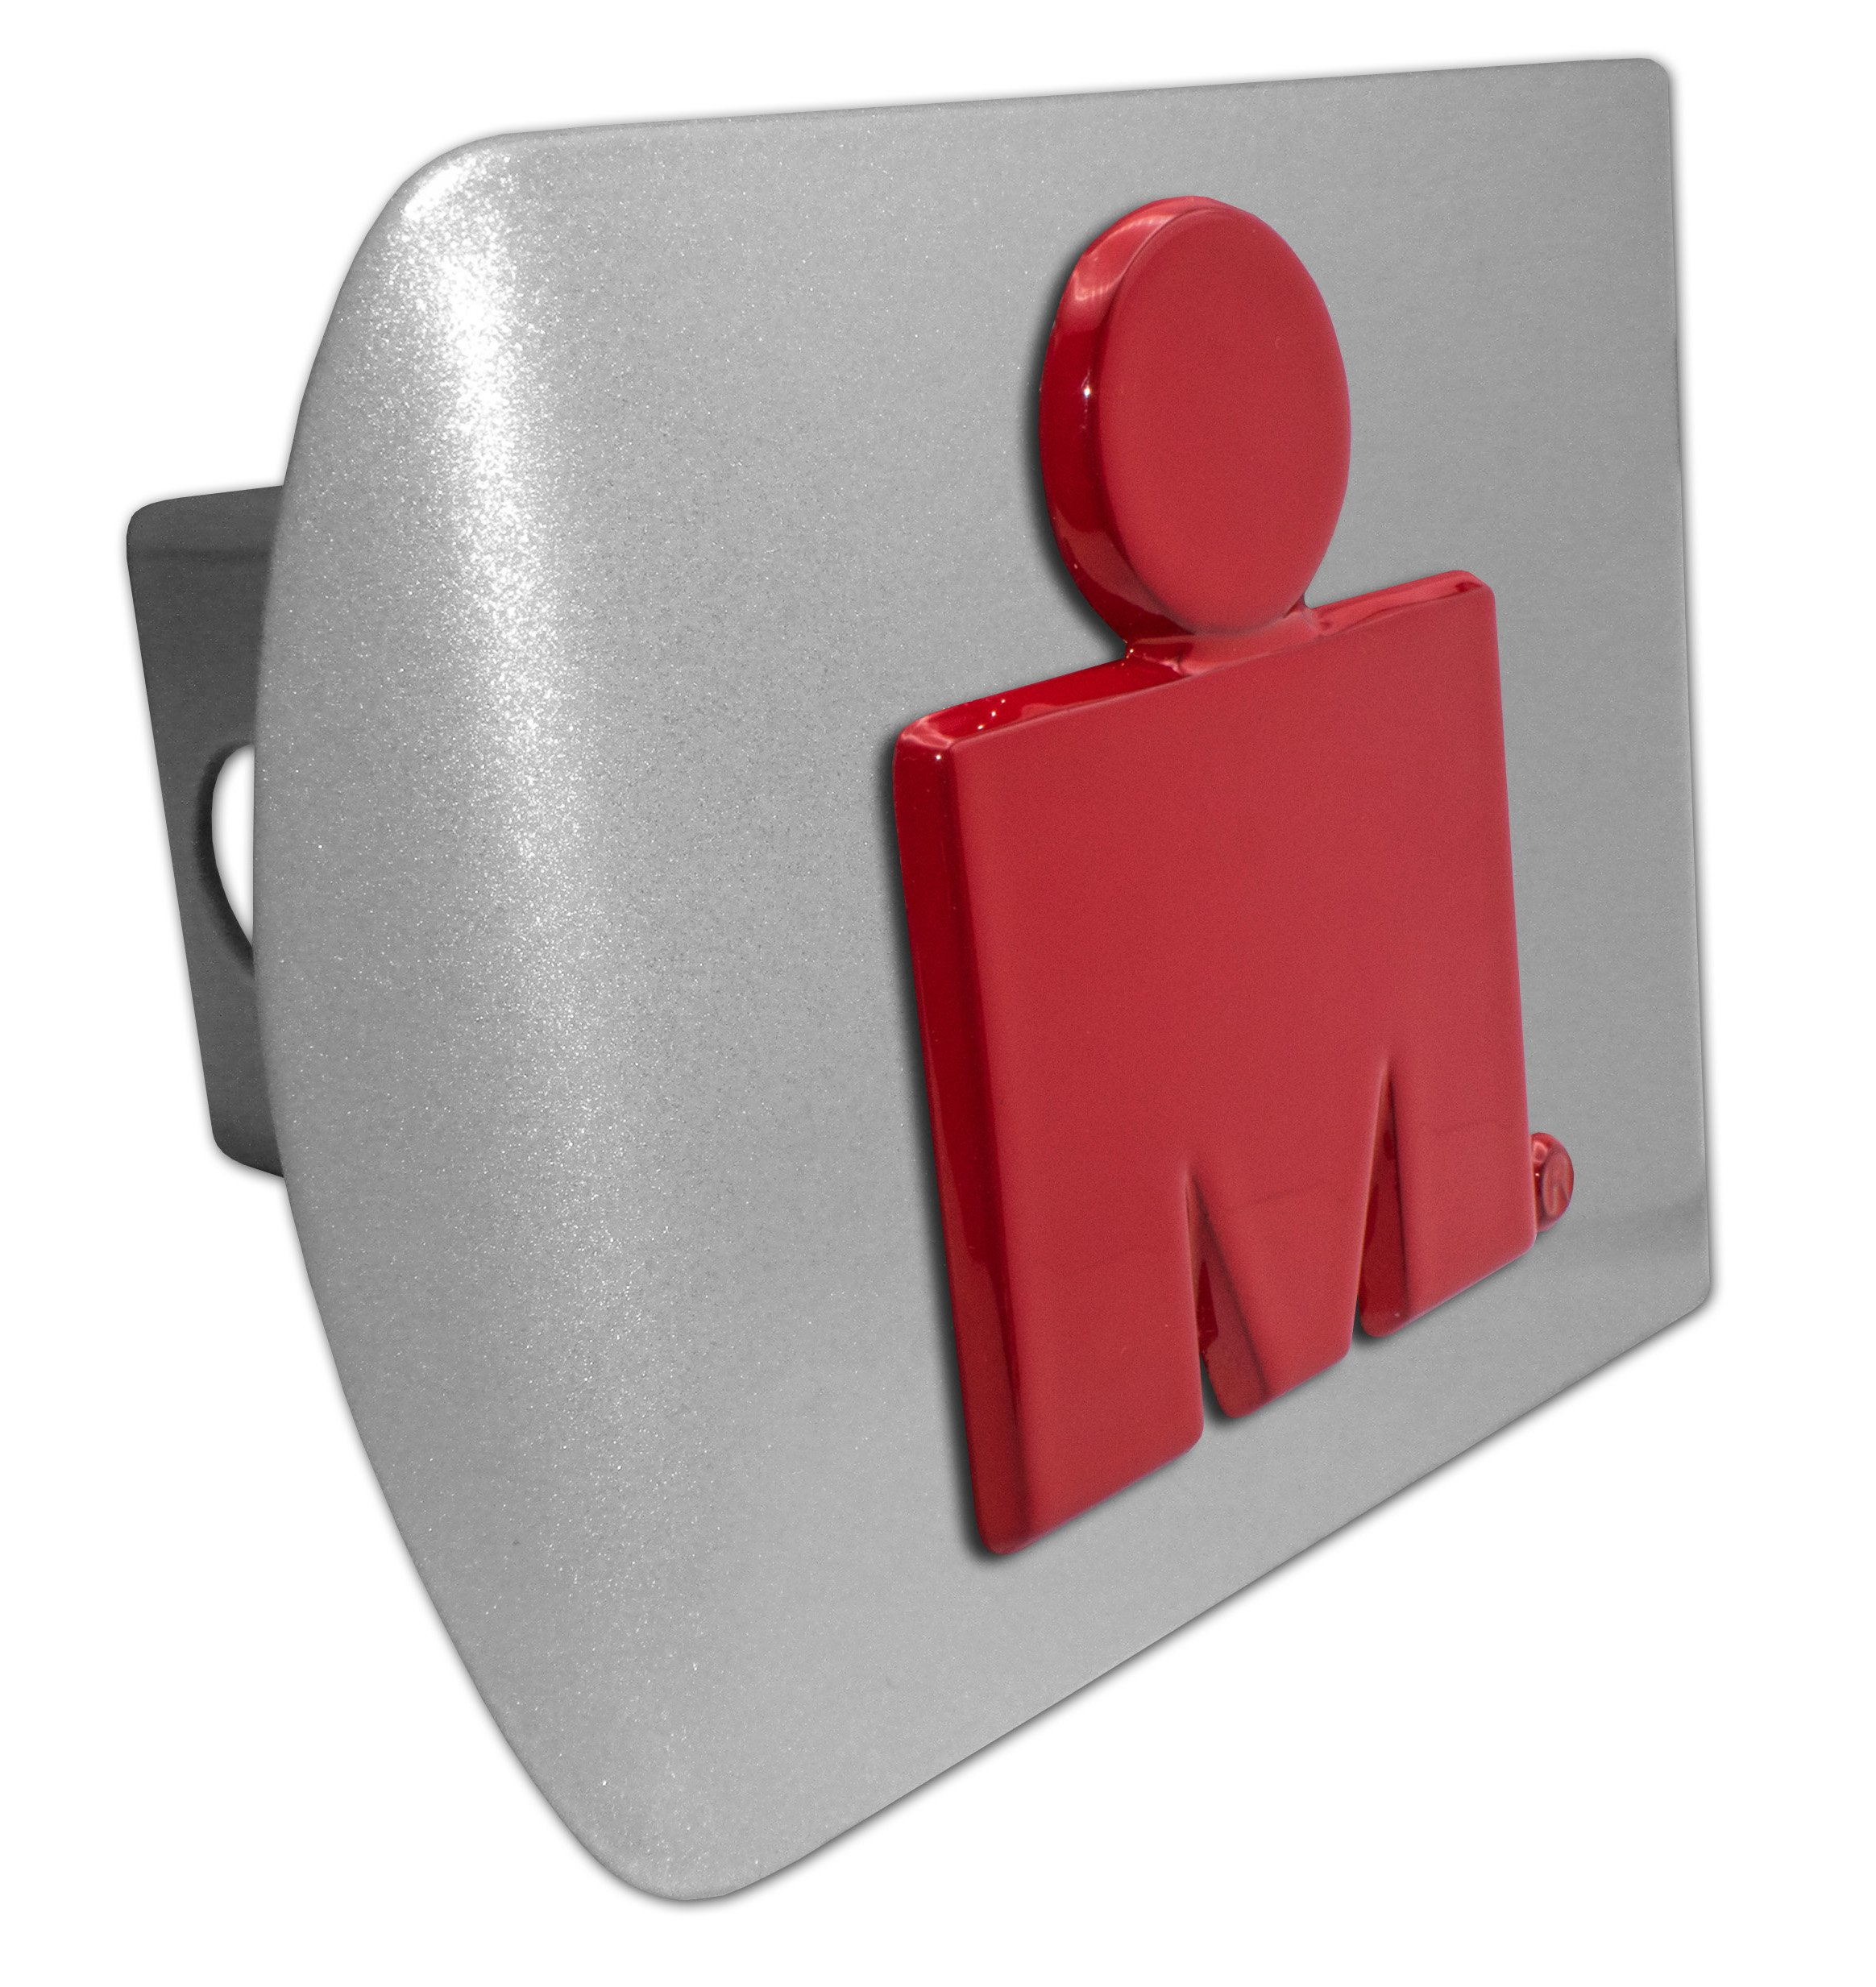 Elektroplate Ironman Triathlon Red and Brushed Chrome Metal Hitch Cover by Elektroplate